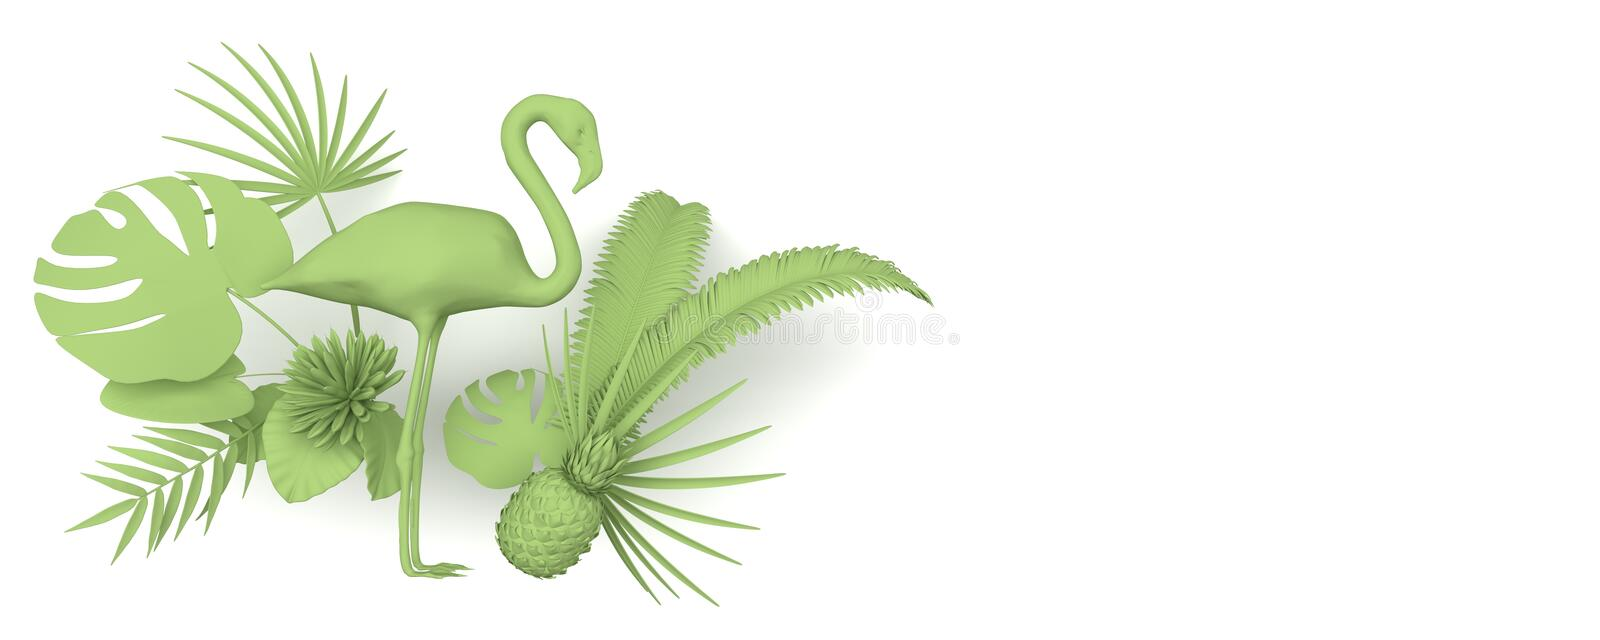 Flamingo surrounded by tropical exotic plants. Monochrome green image on a white background. Copy space. 3D rendering. vector illustration